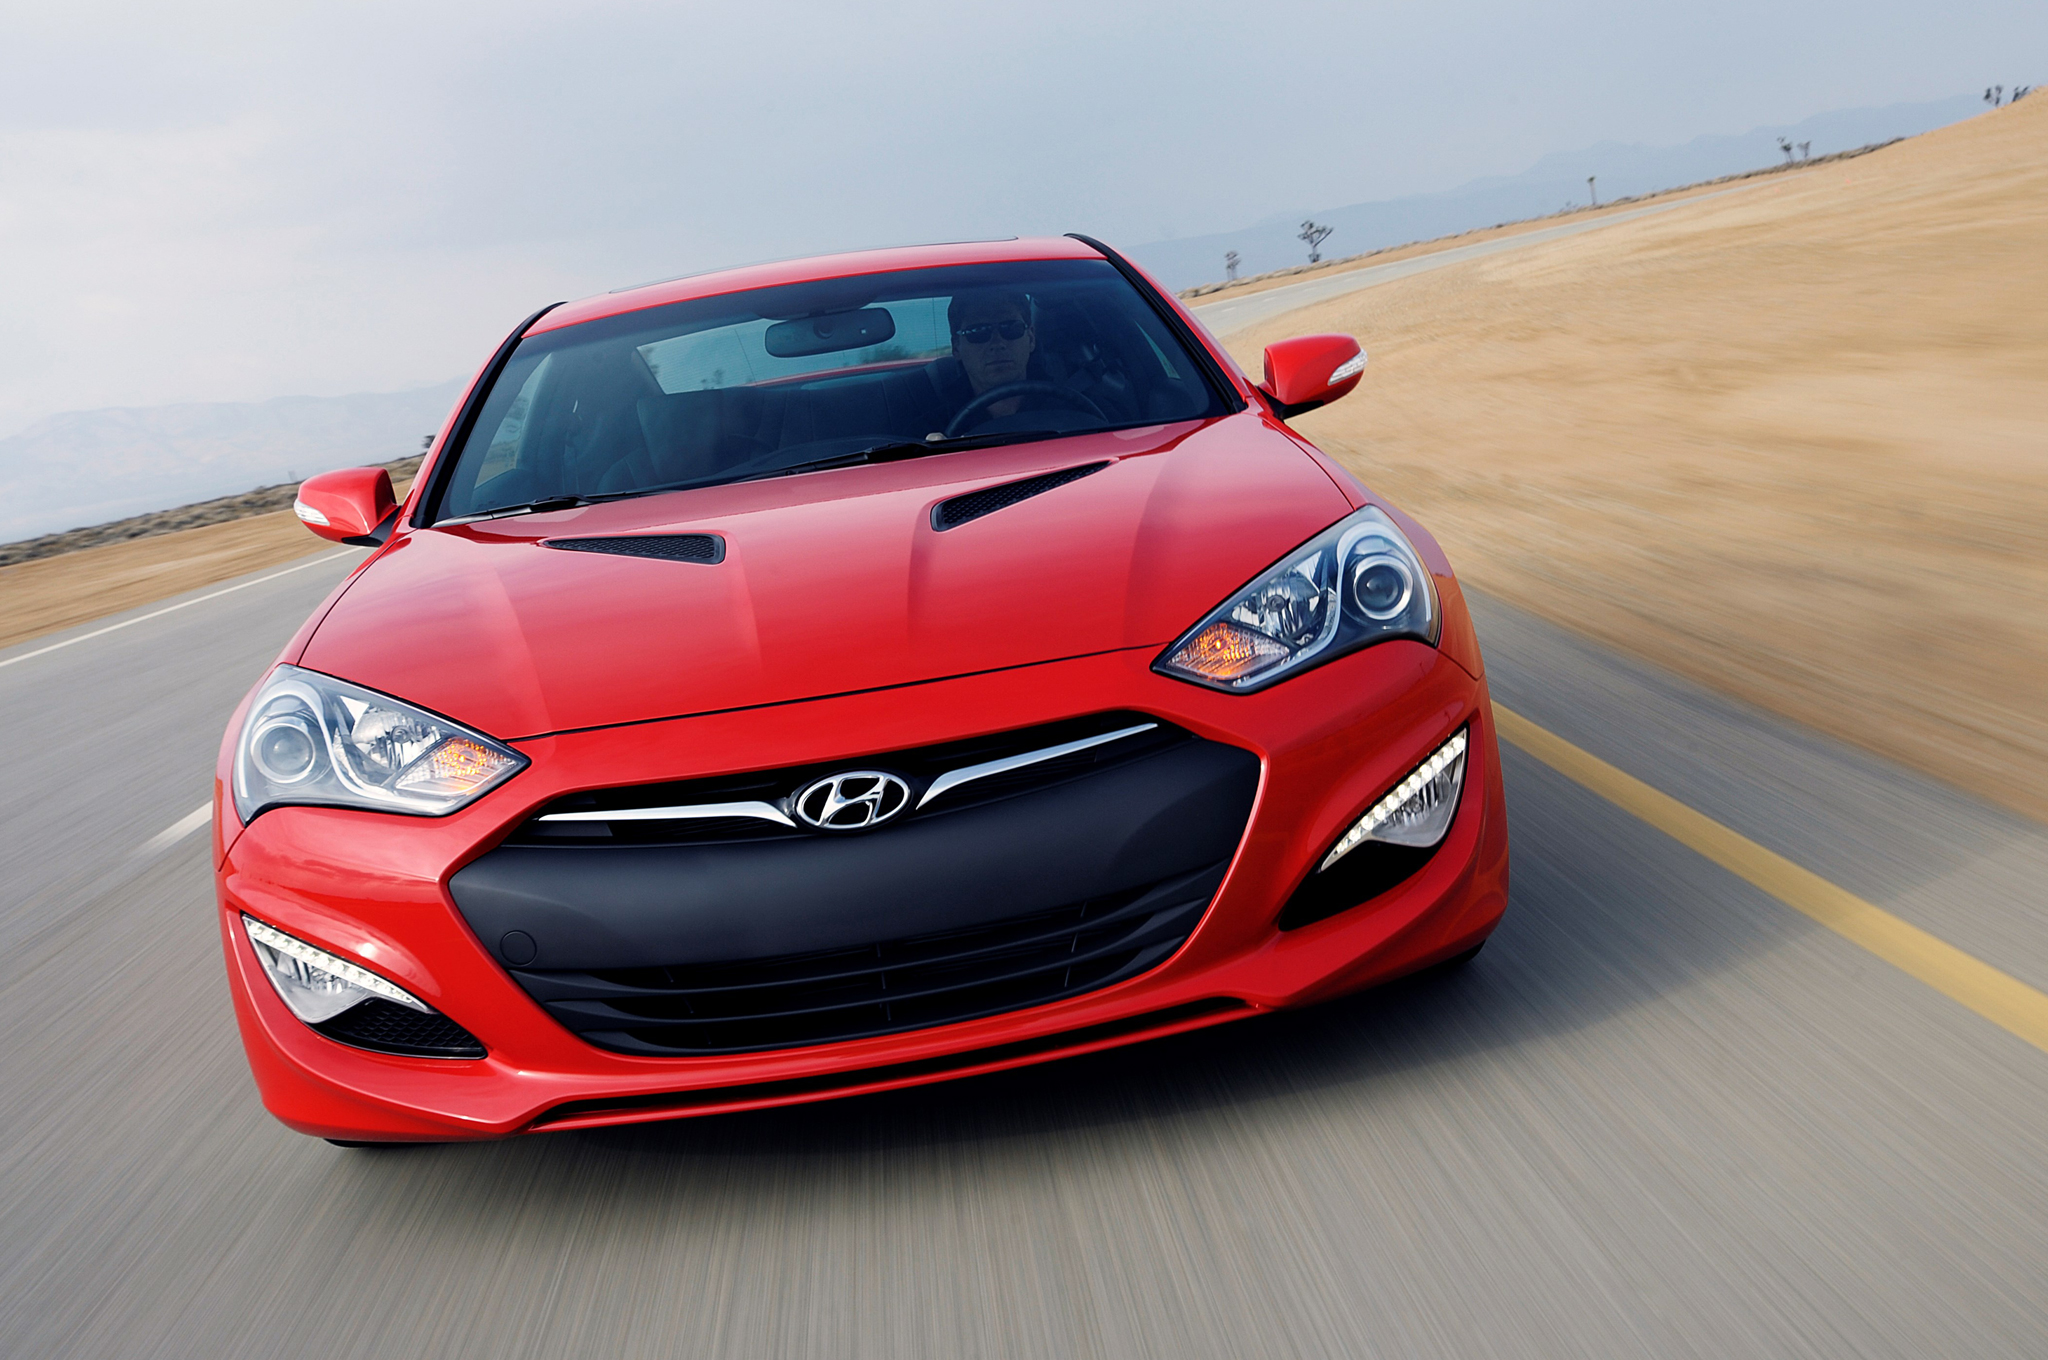 We Hear: 2015 Hyundai Genesis Coupe Drops Turbo 2.0 Liter